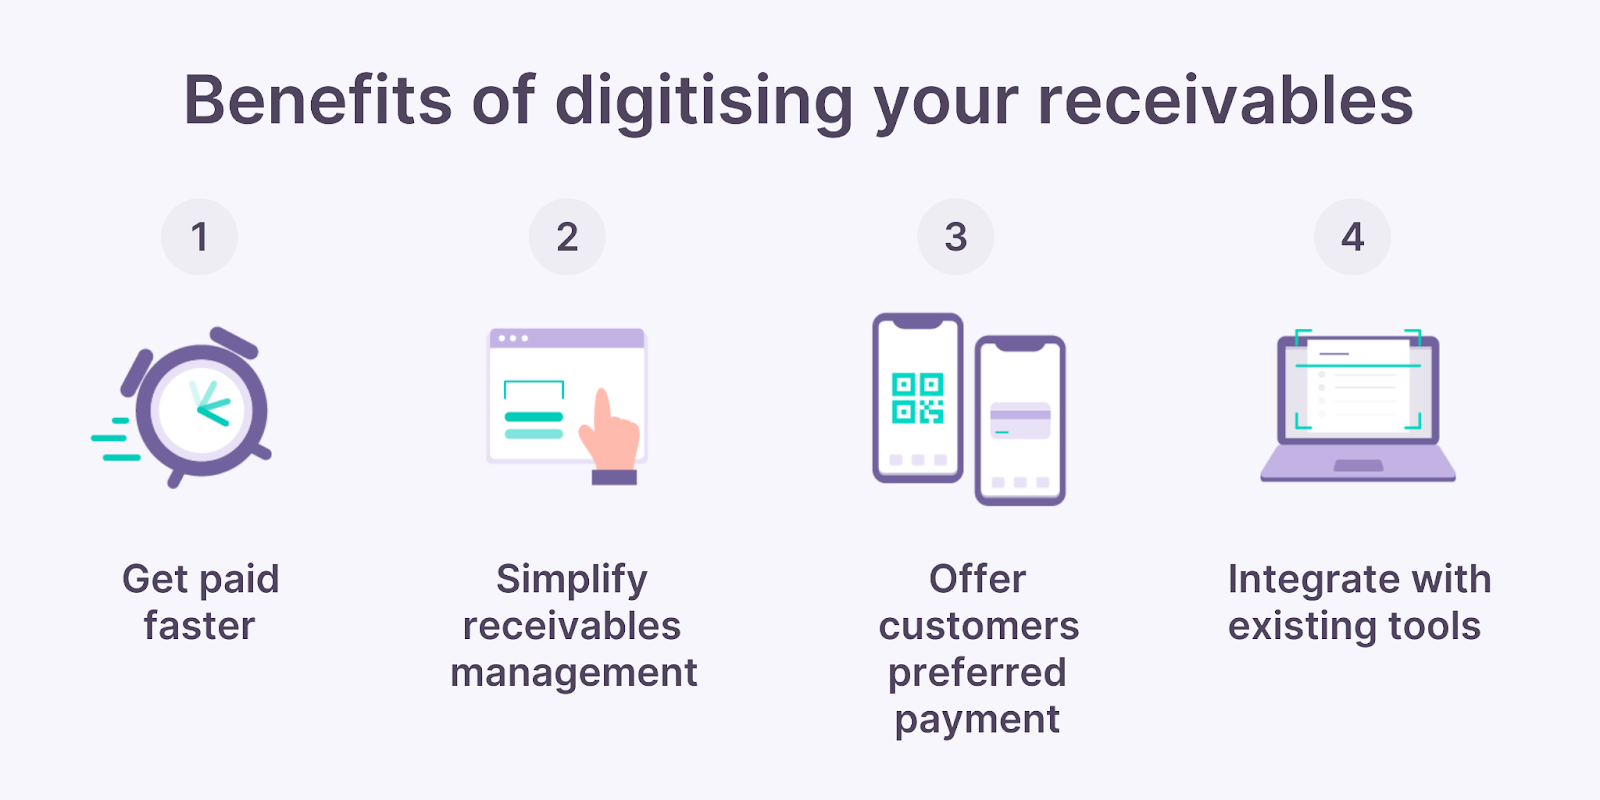 Benefits of digitising your receivables